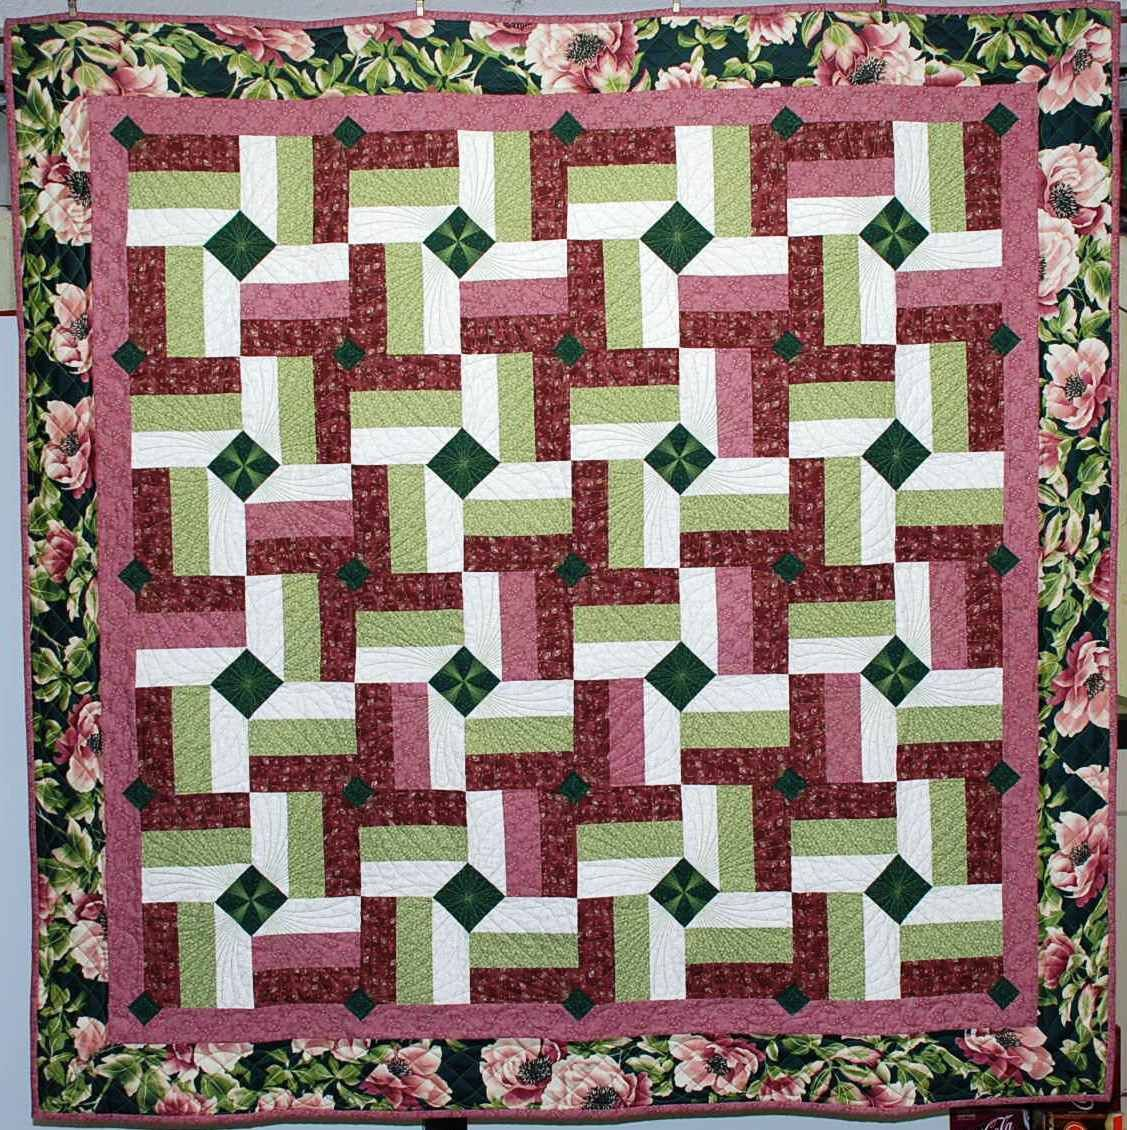 Rail Fence Quilt Variations | just finished a Split Rail Fence ... : rail fence quilt pattern - Adamdwight.com